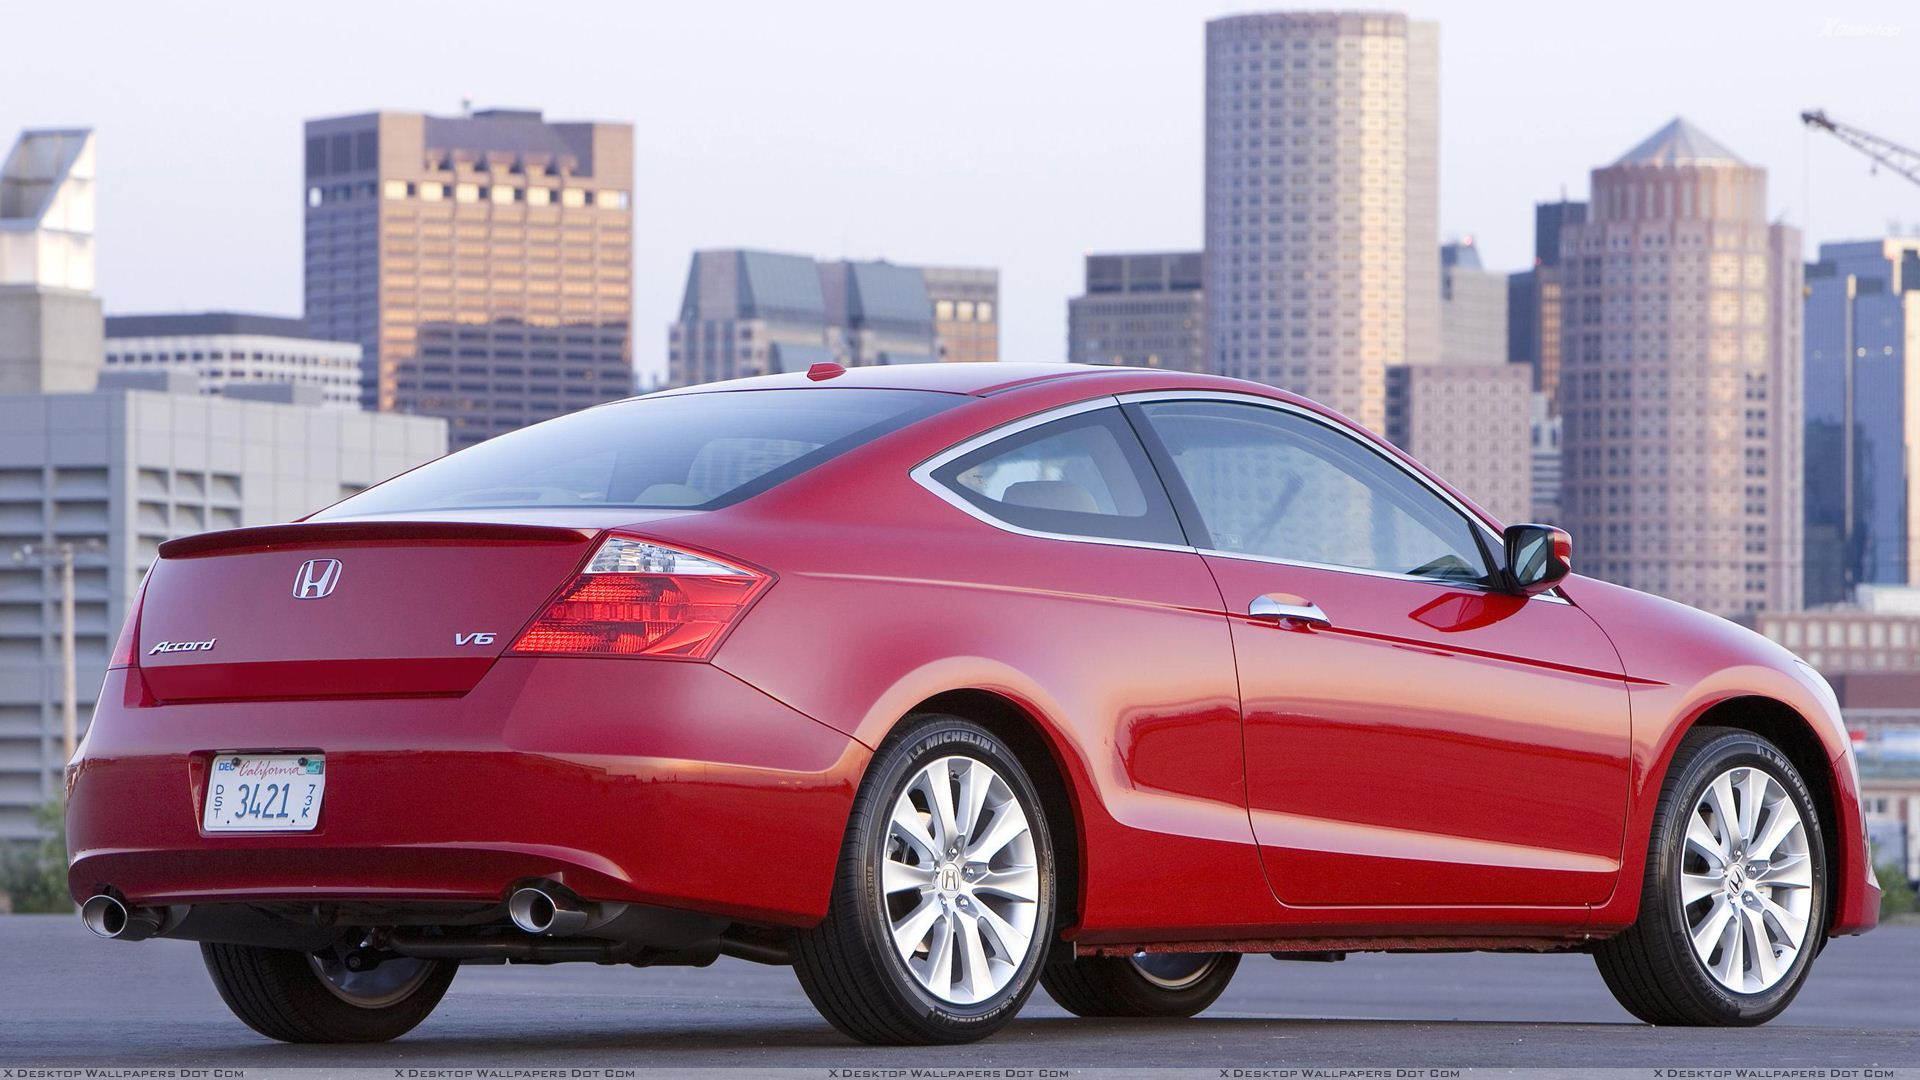 Honda Accord Ex L V6 Coupe Wallpapers - HD Wallpaper For Desktop Background | Smartphone ...